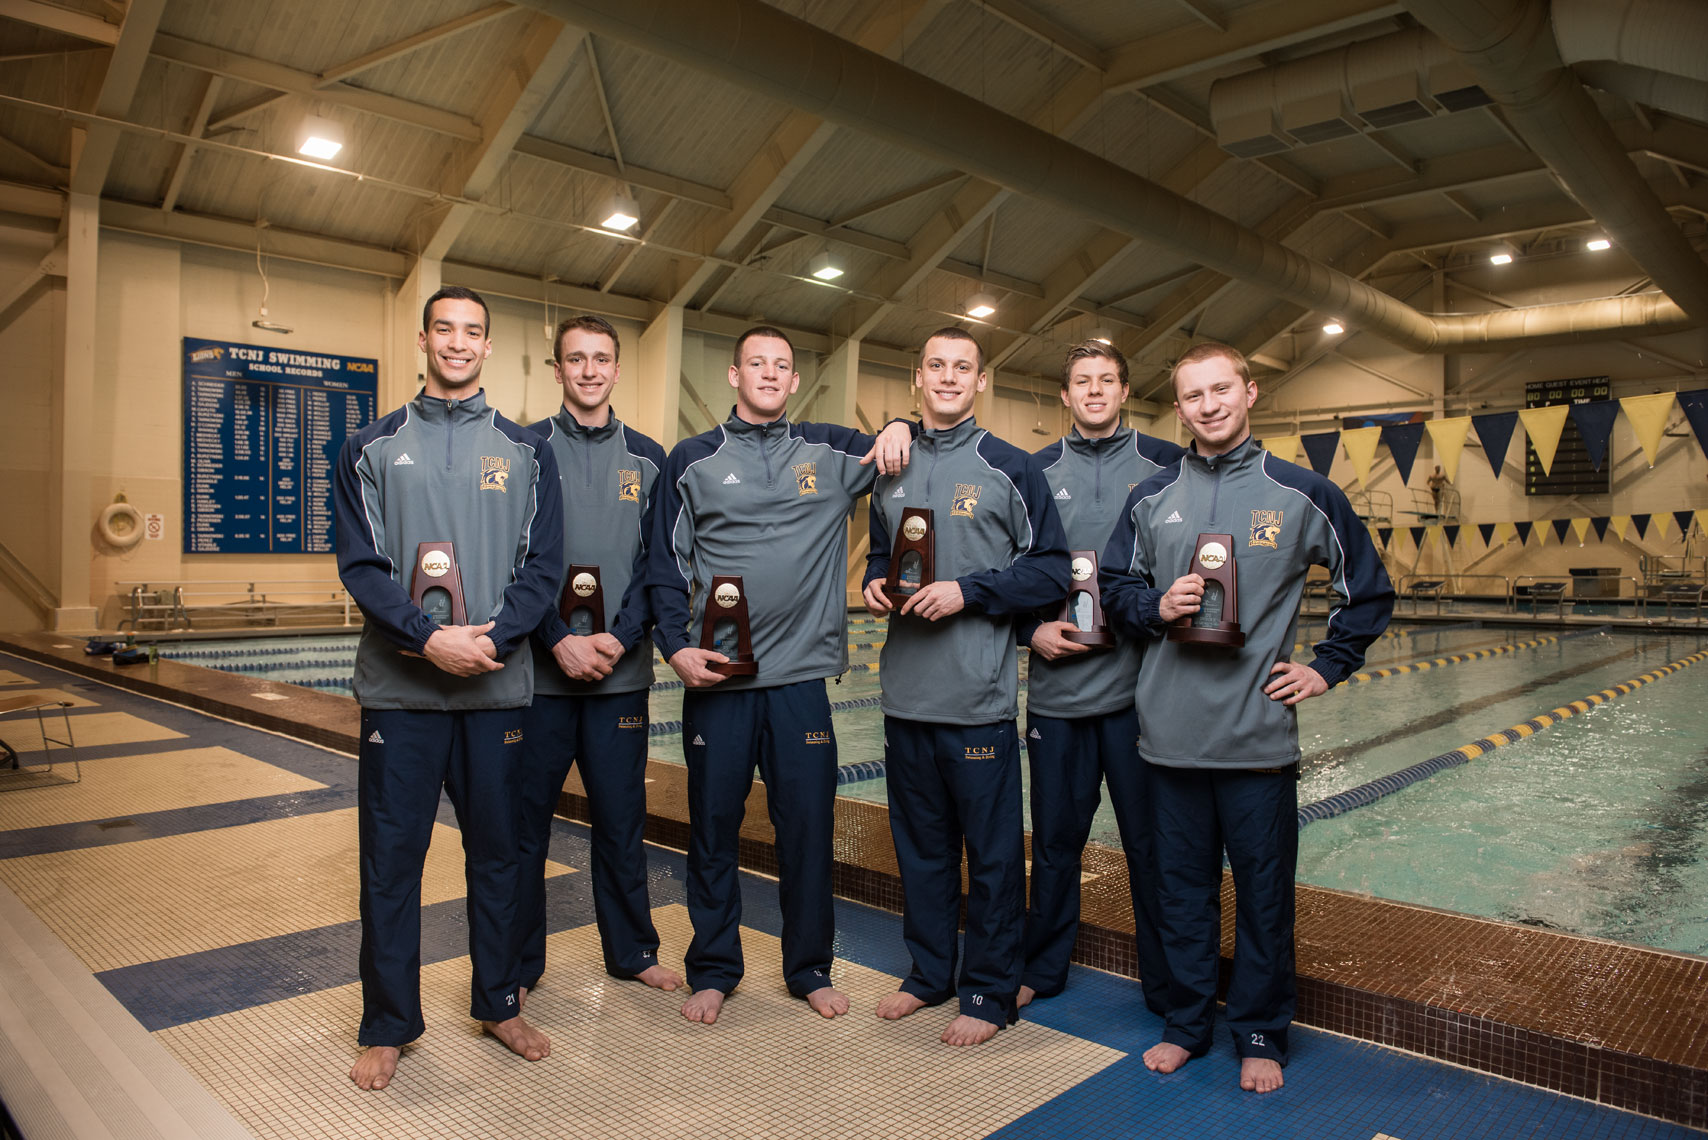 The TCNJ swim team, by education photographer Mike Morgan.